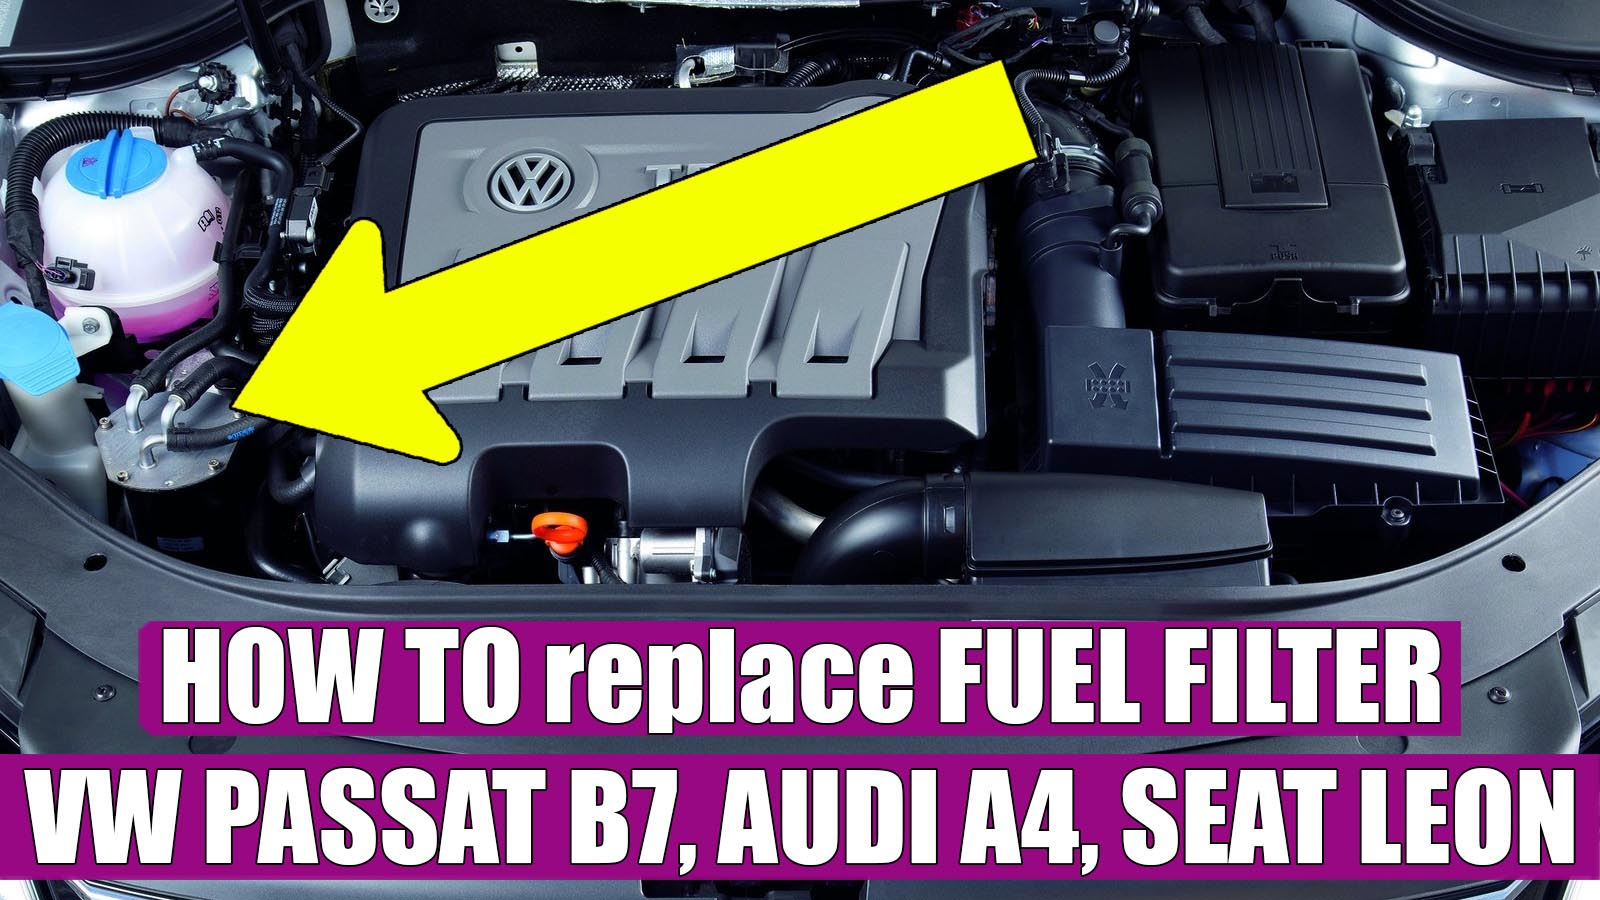 How to replace / change fuel filter VW Passat B7 TDI in 5 steps. VIDEOTutoriale din service